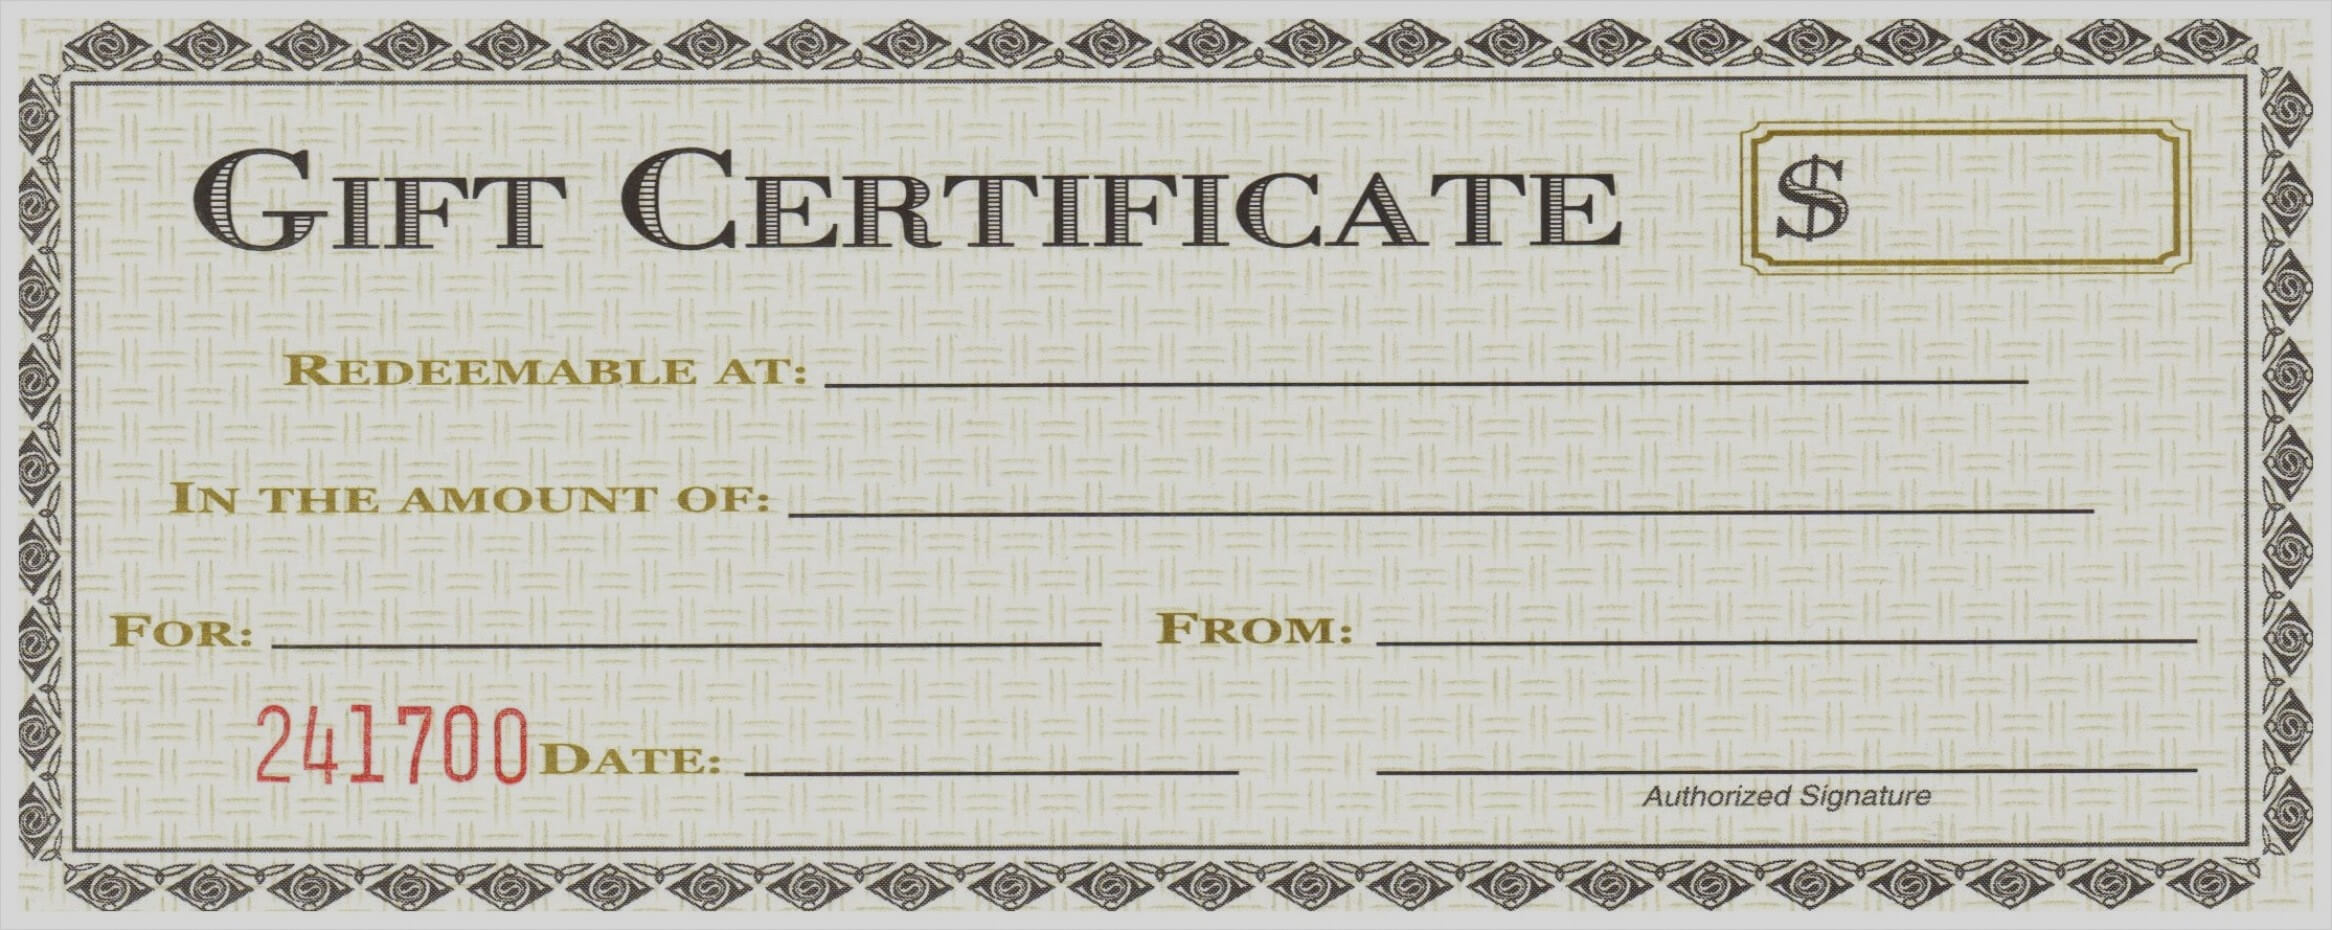 Free Printable Gift Vouchers Template Certificate Templates with regard to Certificate Template For Pages